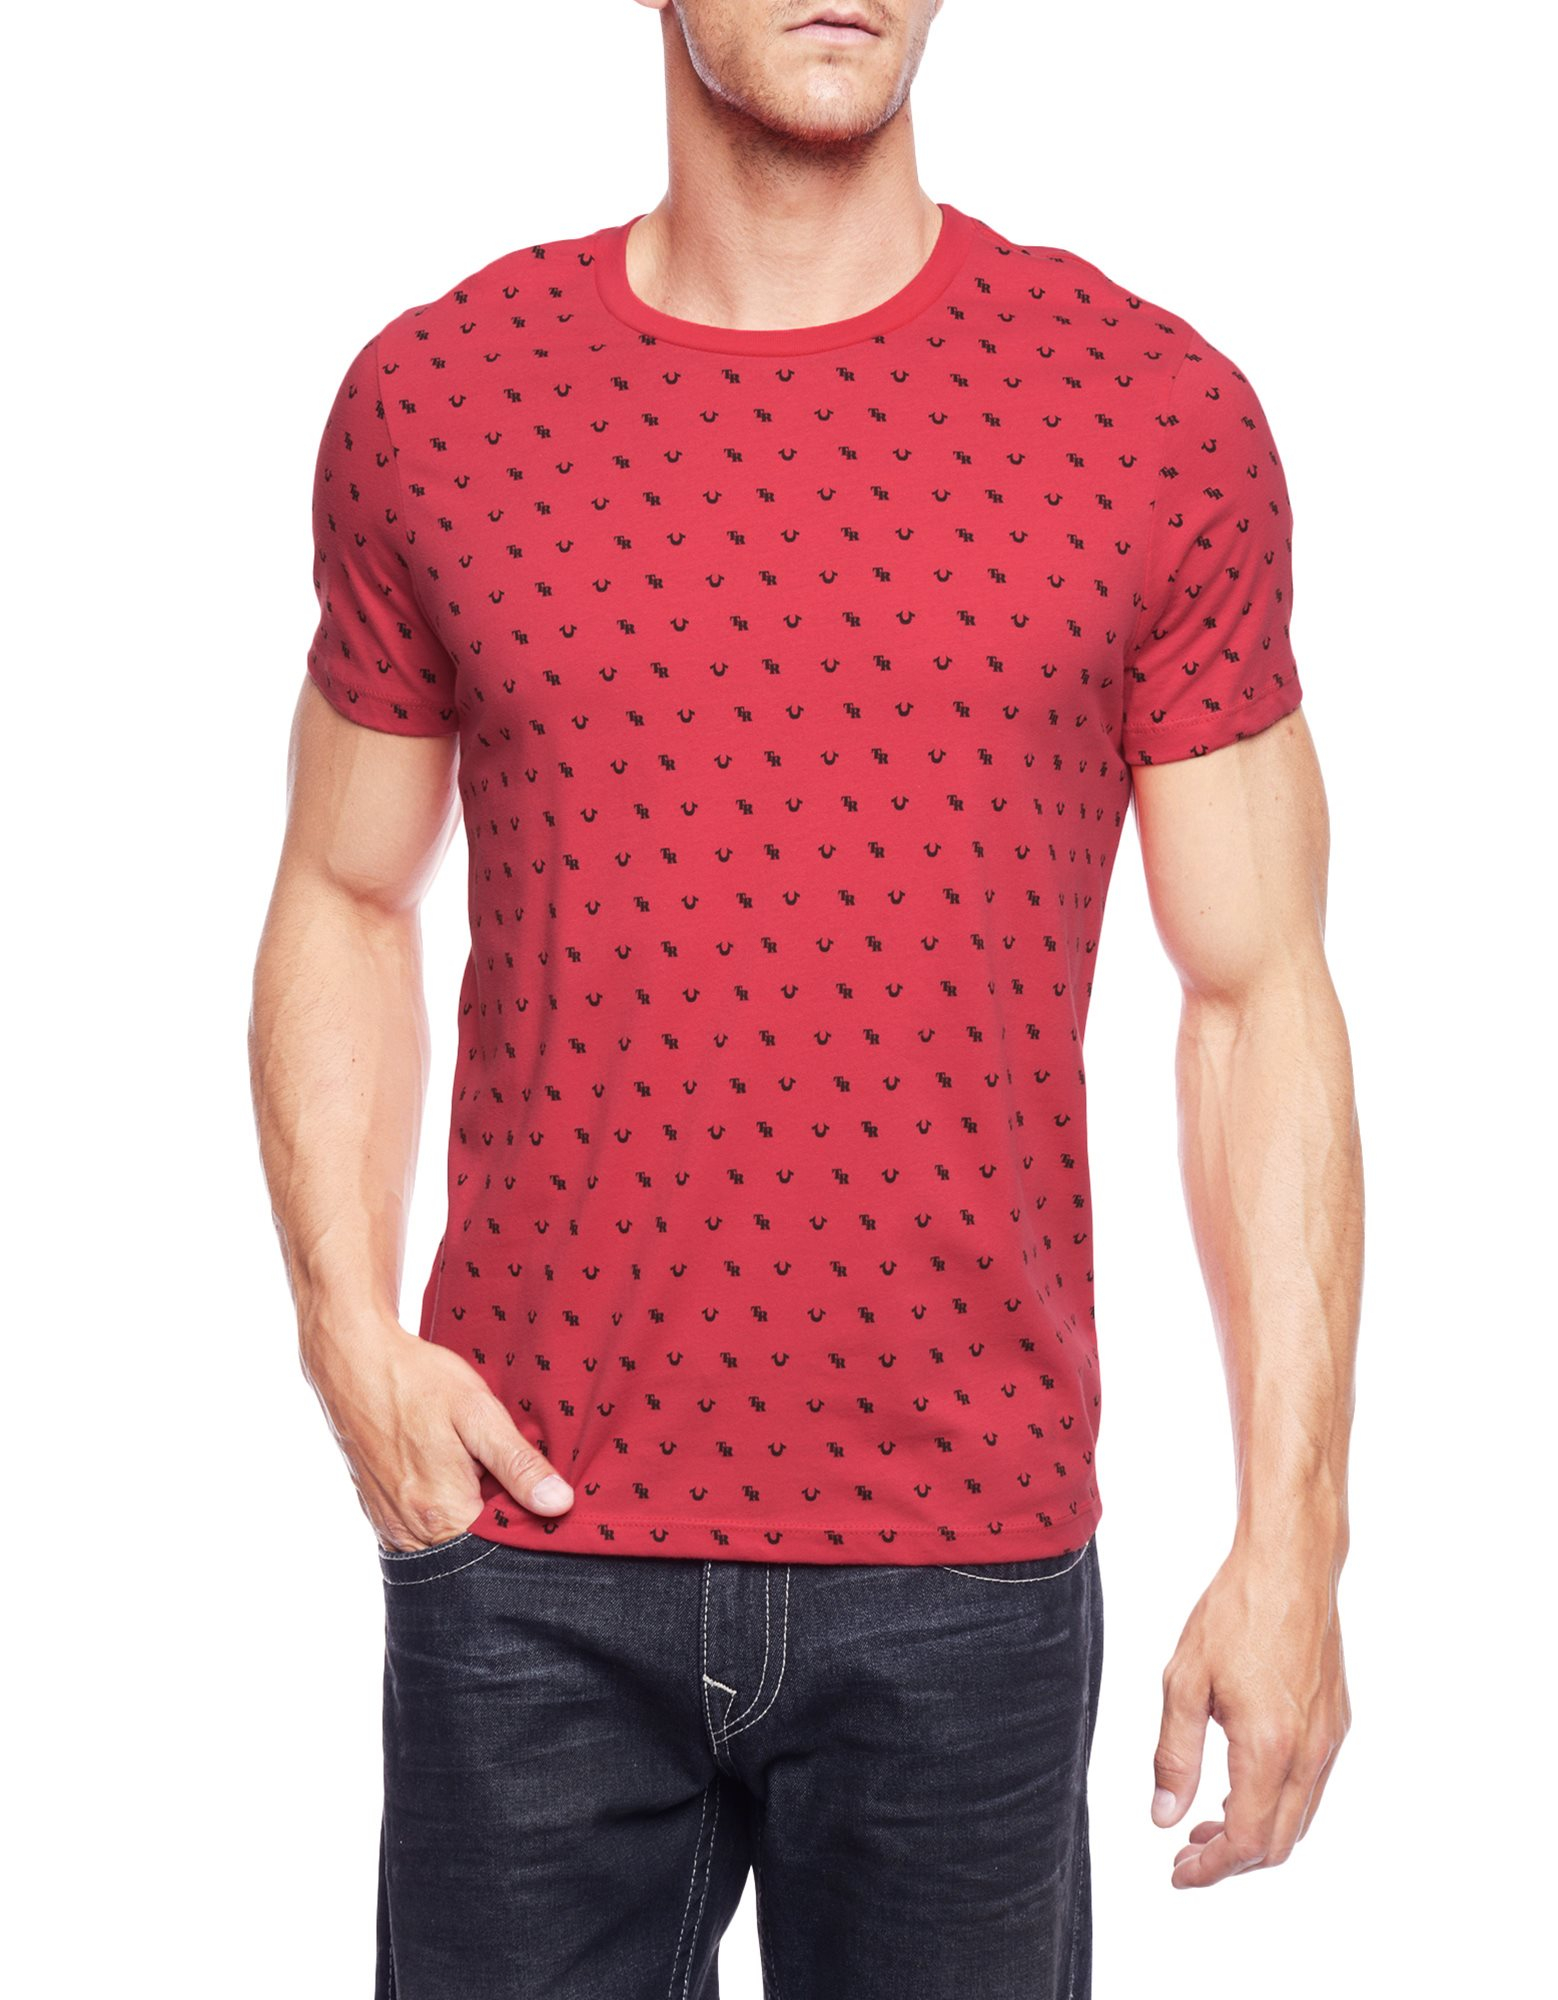 U Neck T Shirt Mens